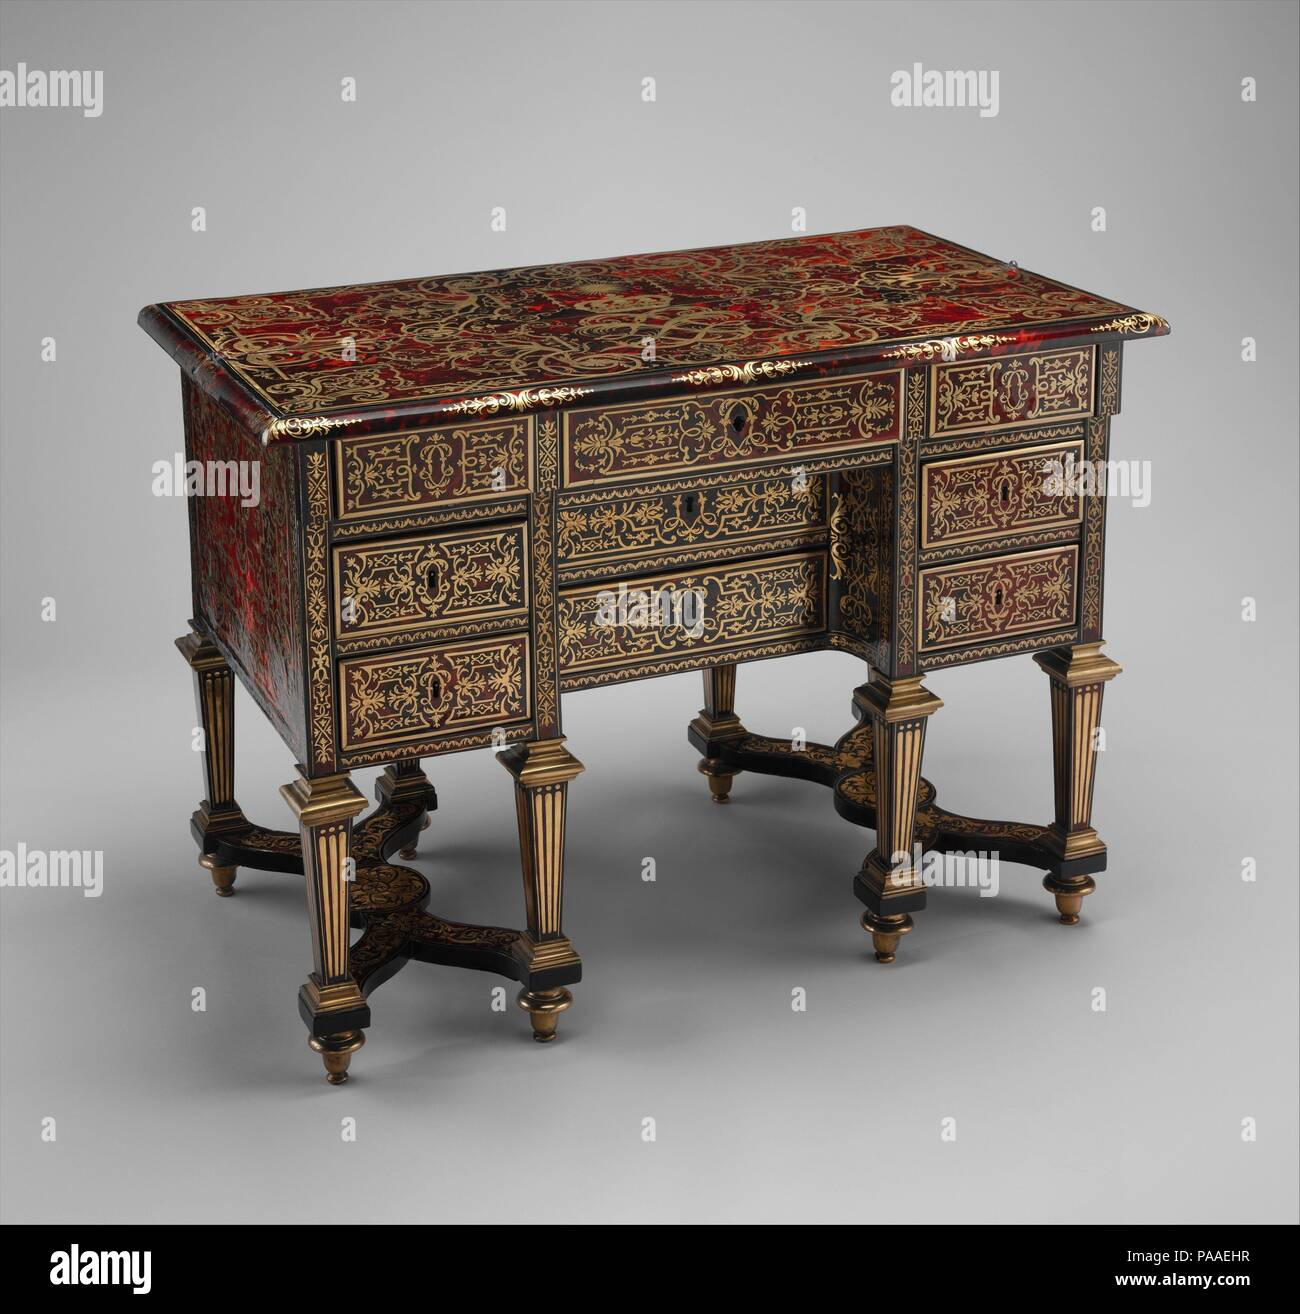 Small desk with folding top (bureau brisé). Culture: French, Paris. Designer: Designed and possibly engraved by Jean Berain (French, Saint-Mihiel 1640-1711 Paris) (1638/9-1711). Dimensions: 30 5/16 x 41 3/4 x 23 3/8 in. (77 x 106 x 59.4cm). Maker: Marquetry by Alexandre-Jean Oppenordt (Dutch, 1639-1715, active France). Date: ca. 1685.  With a folding top that lifts up to reveal a narrow writing surface, this desk is known in French as a bureau brisé ( literally, 'broken desk'). Introduced about 1669, this type of writing table remained fashionable until the early years of the eighteenth centur - Stock Image